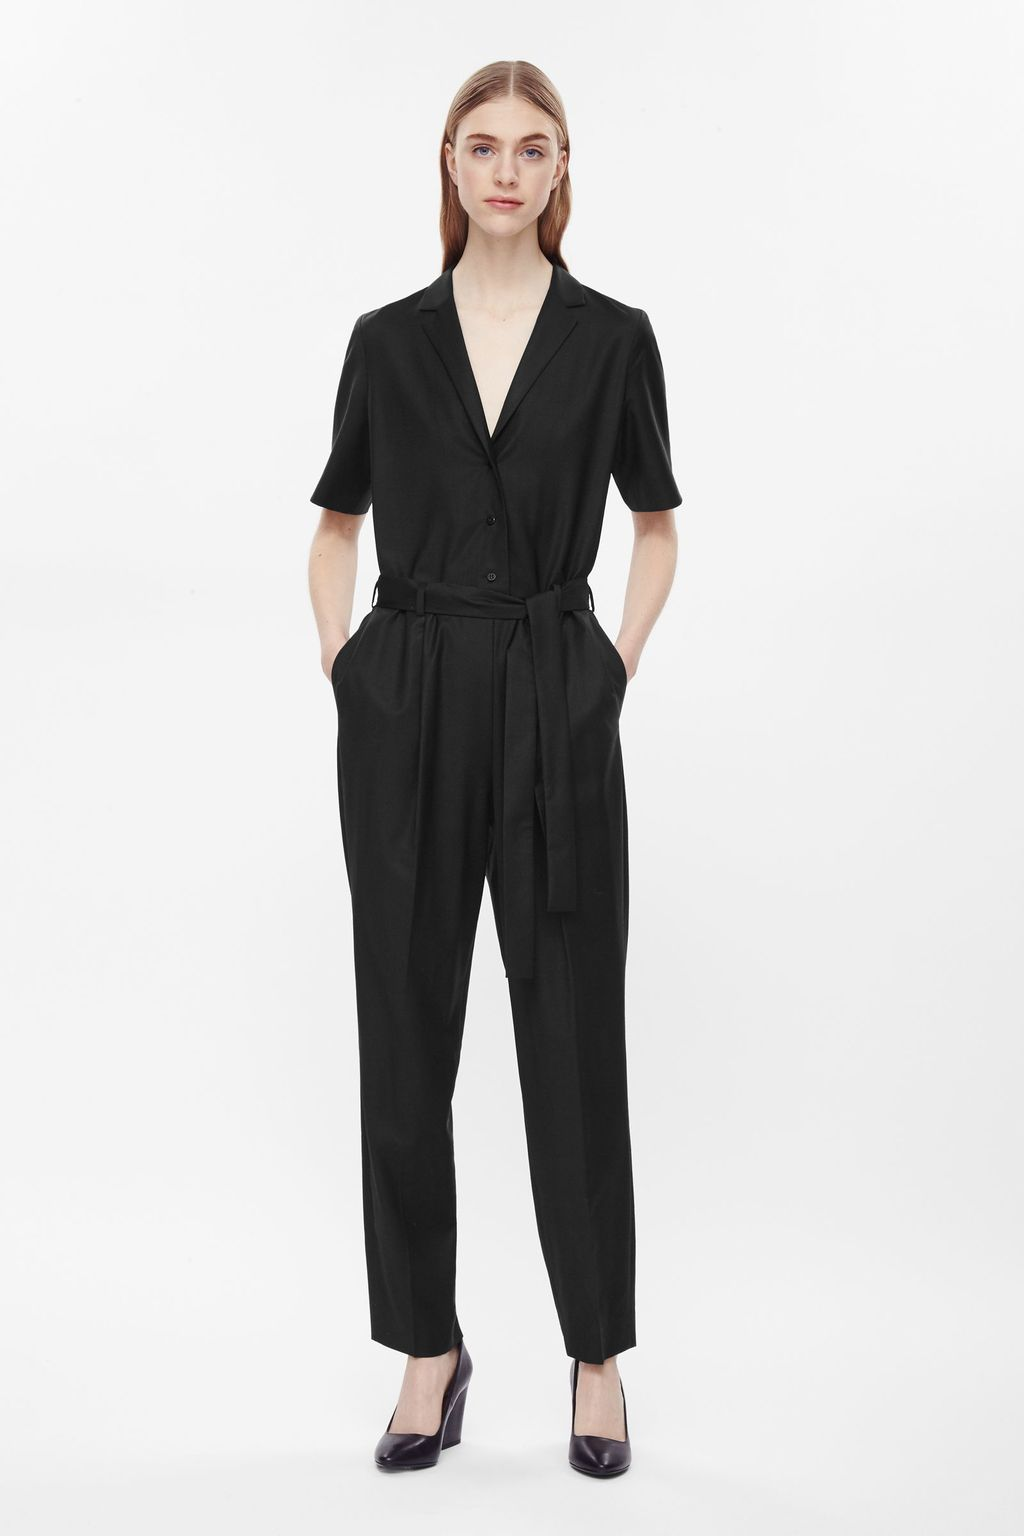 Belted Jumpsuit - length: standard; neckline: v-neck; pattern: plain; waist detail: belted waist/tie at waist/drawstring; predominant colour: black; occasions: evening, creative work; fit: body skimming; fibres: wool - 100%; sleeve length: short sleeve; sleeve style: standard; style: jumpsuit; pattern type: fabric; texture group: woven light midweight; season: a/w 2015; wardrobe: highlight